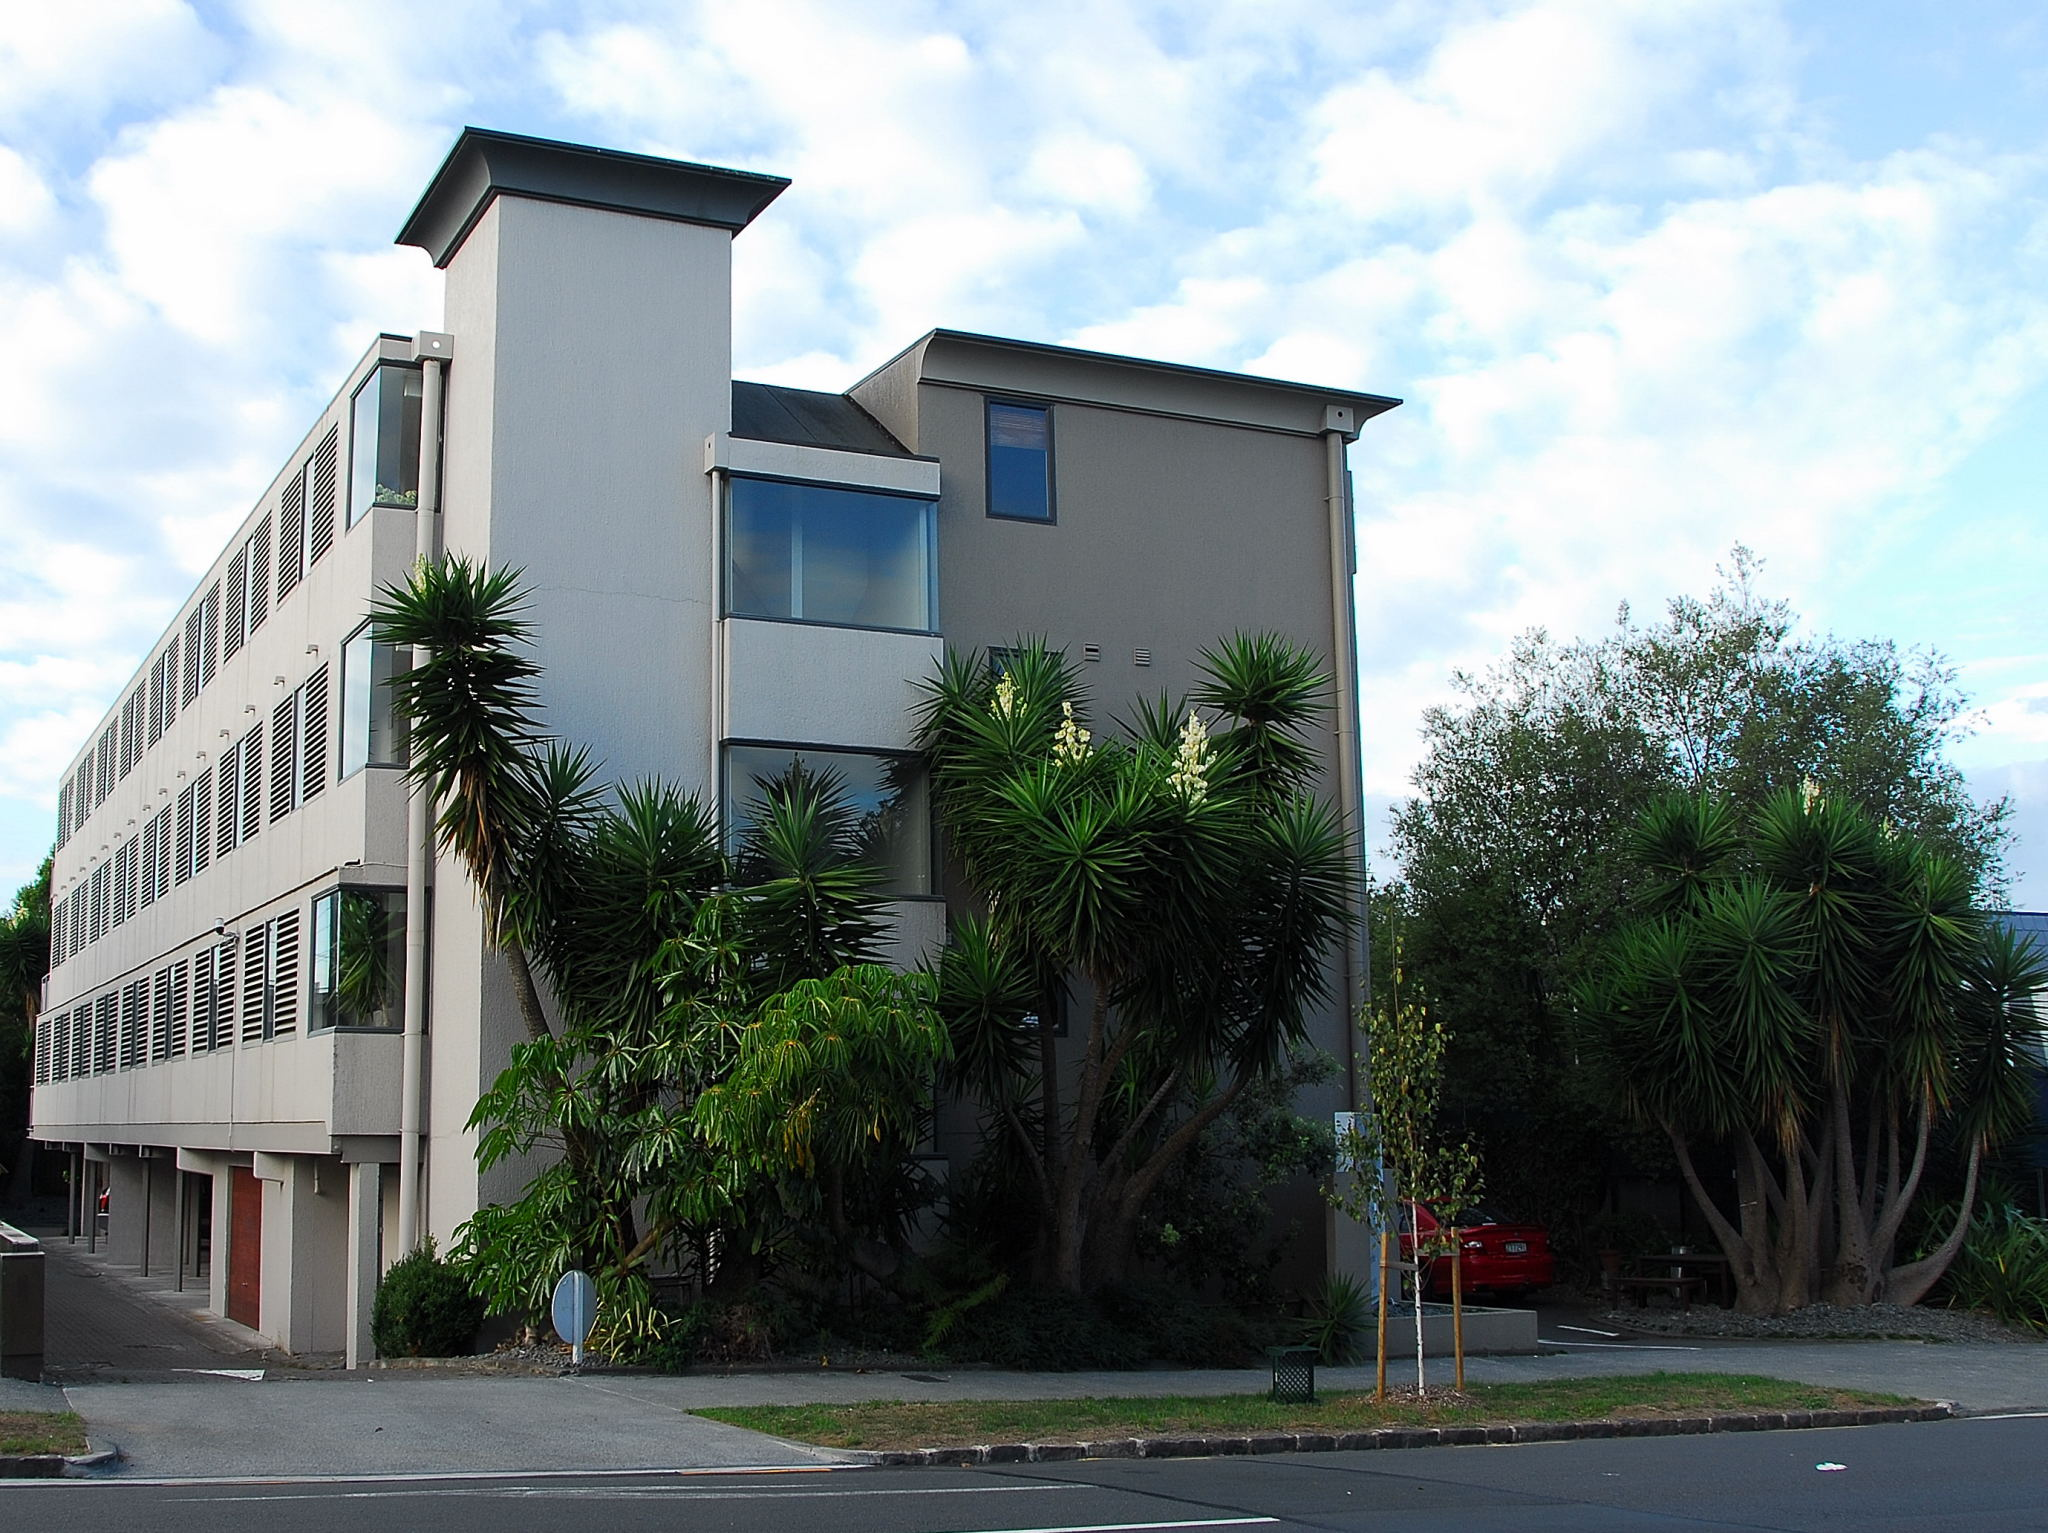 Off broadway motel newmarket auckland accommodation - University of auckland swimming pool ...